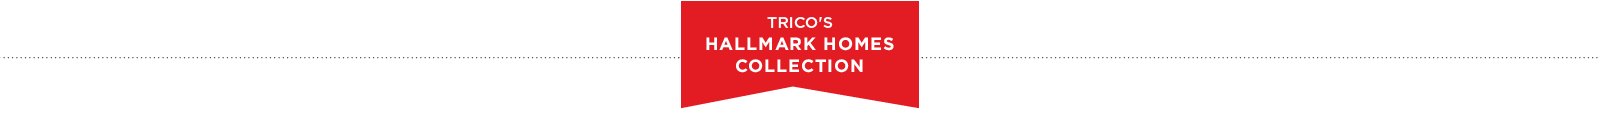 Trico Homes Hallmark Collection